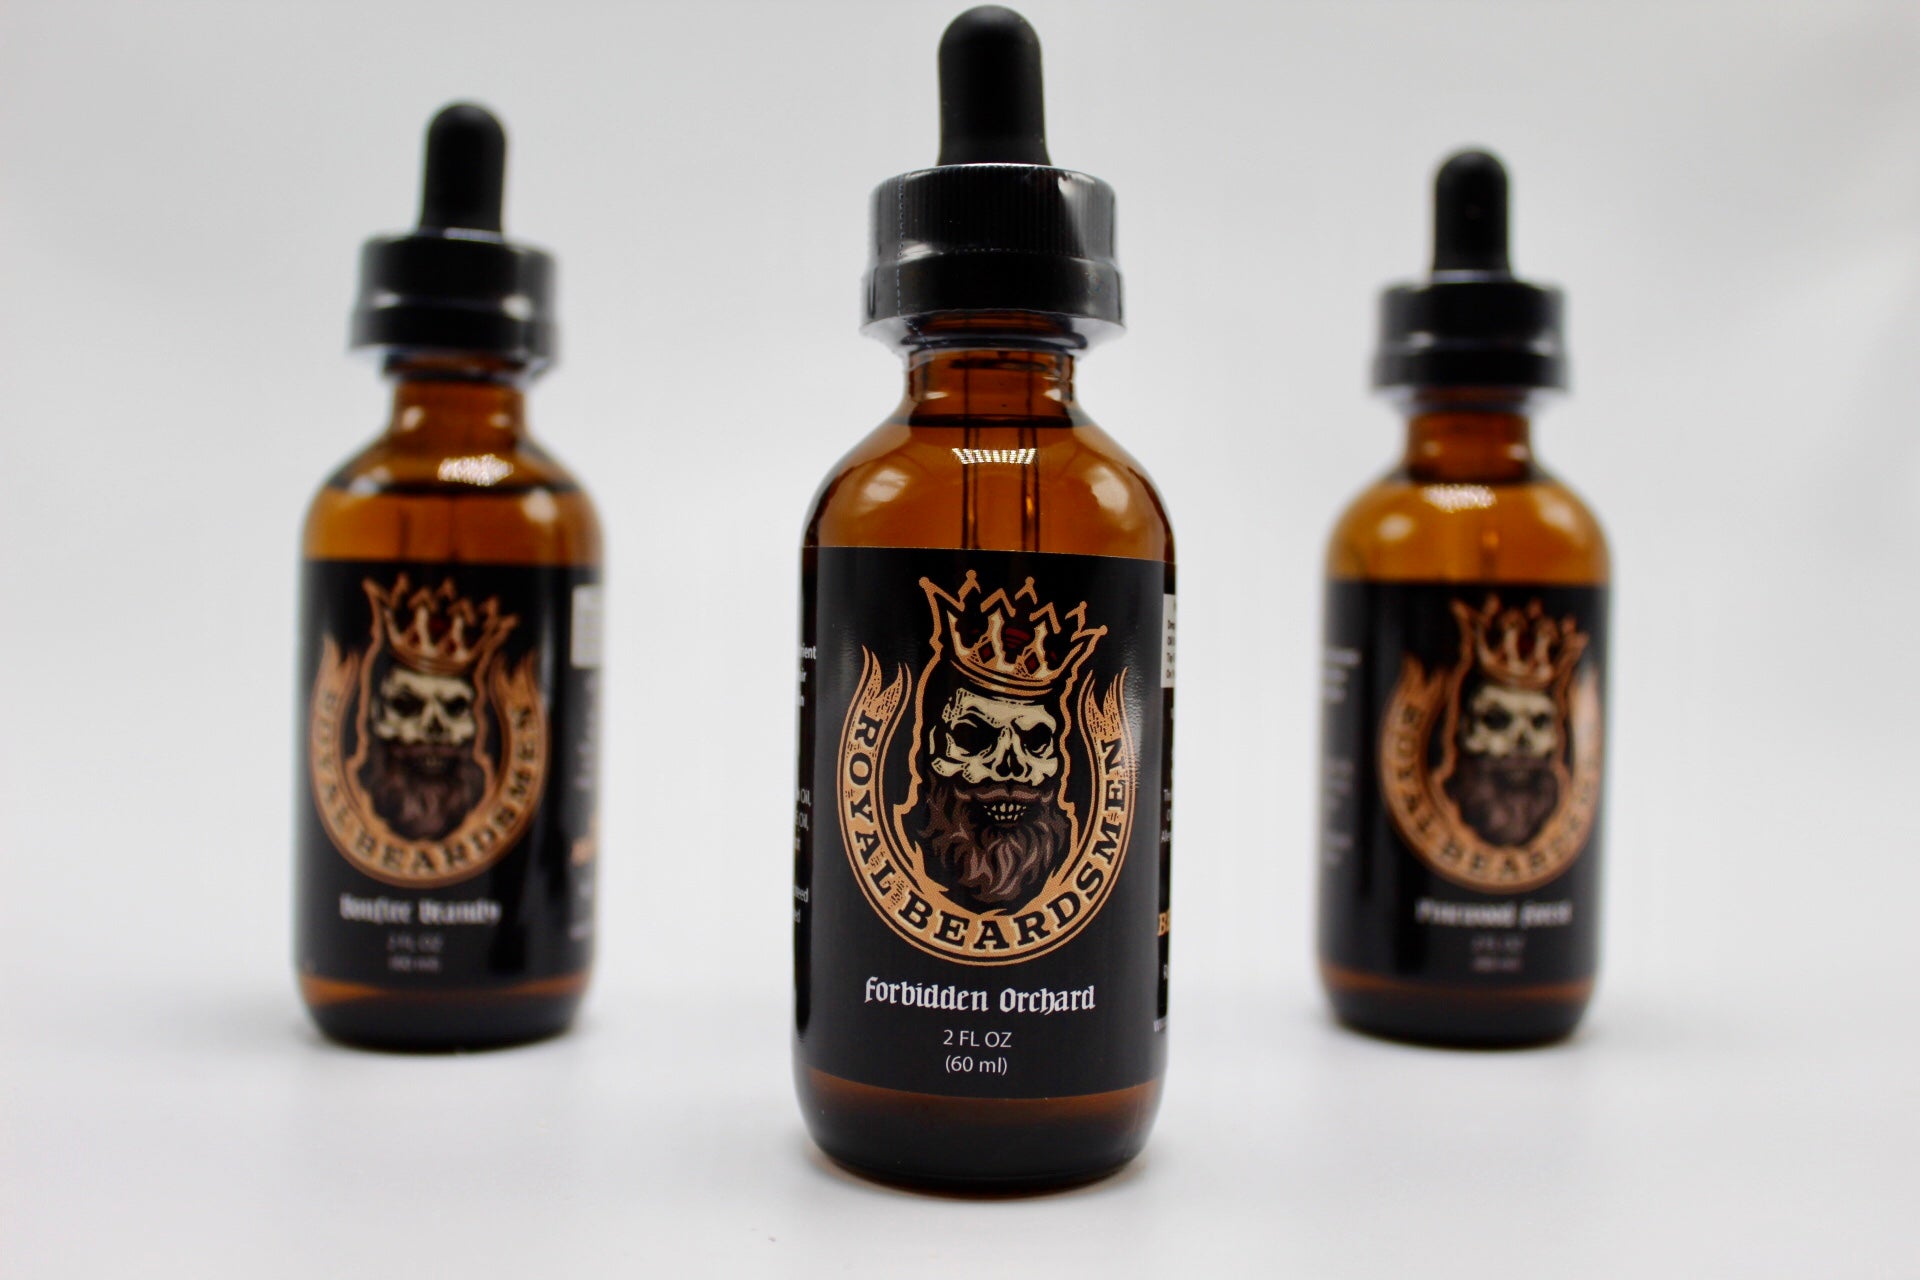 Royal Beardsmen Beard Oil